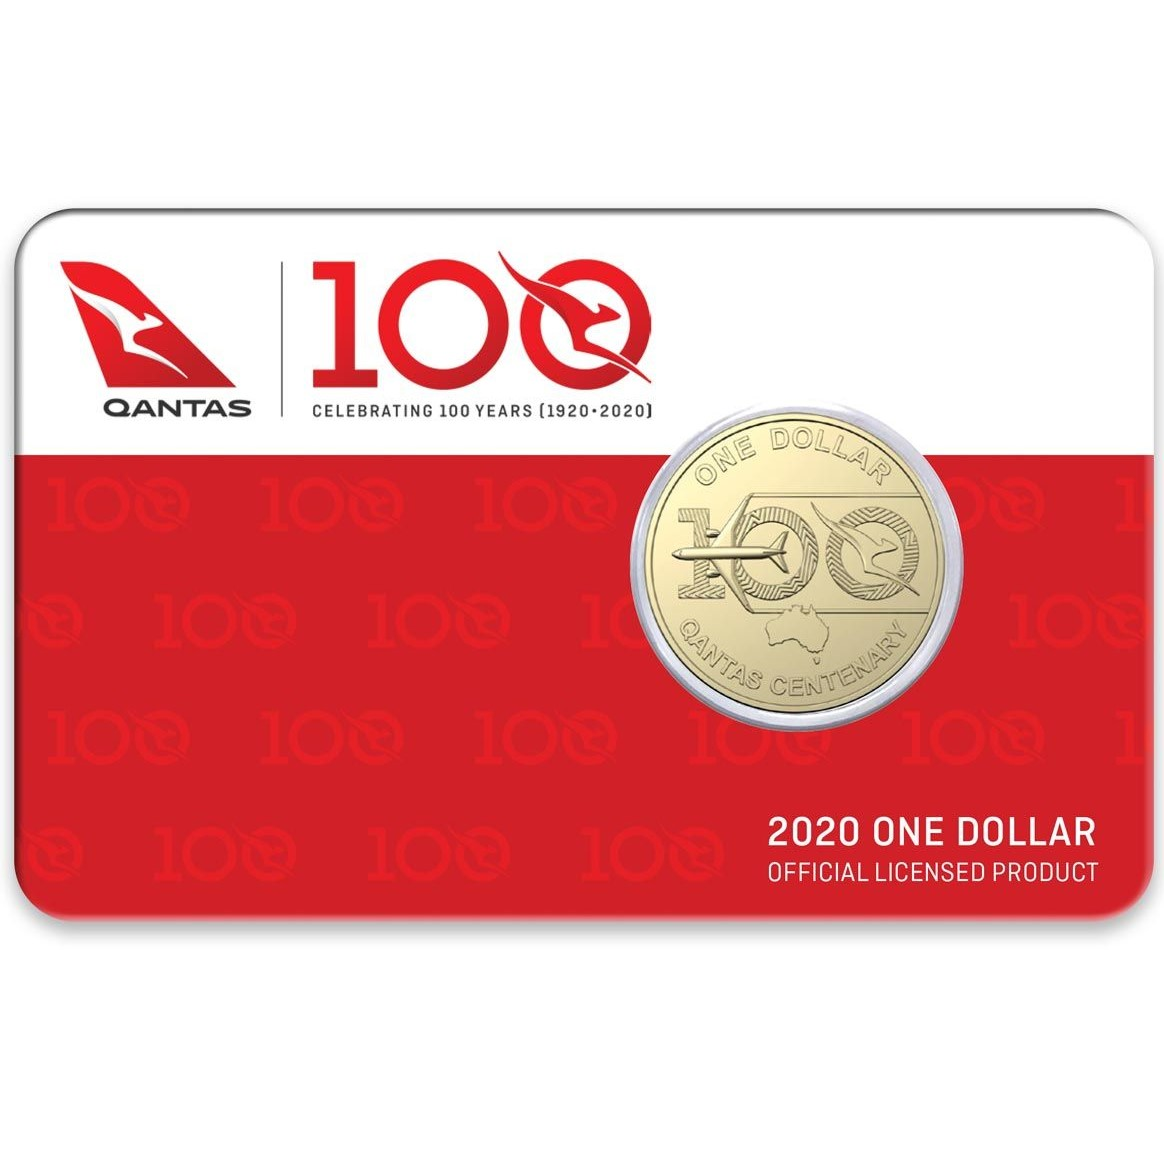 Thumbnail for 2020  QANTAS Centenary - Celebrating 100 Years $1 AlBr UNC Coin on DCPL Card